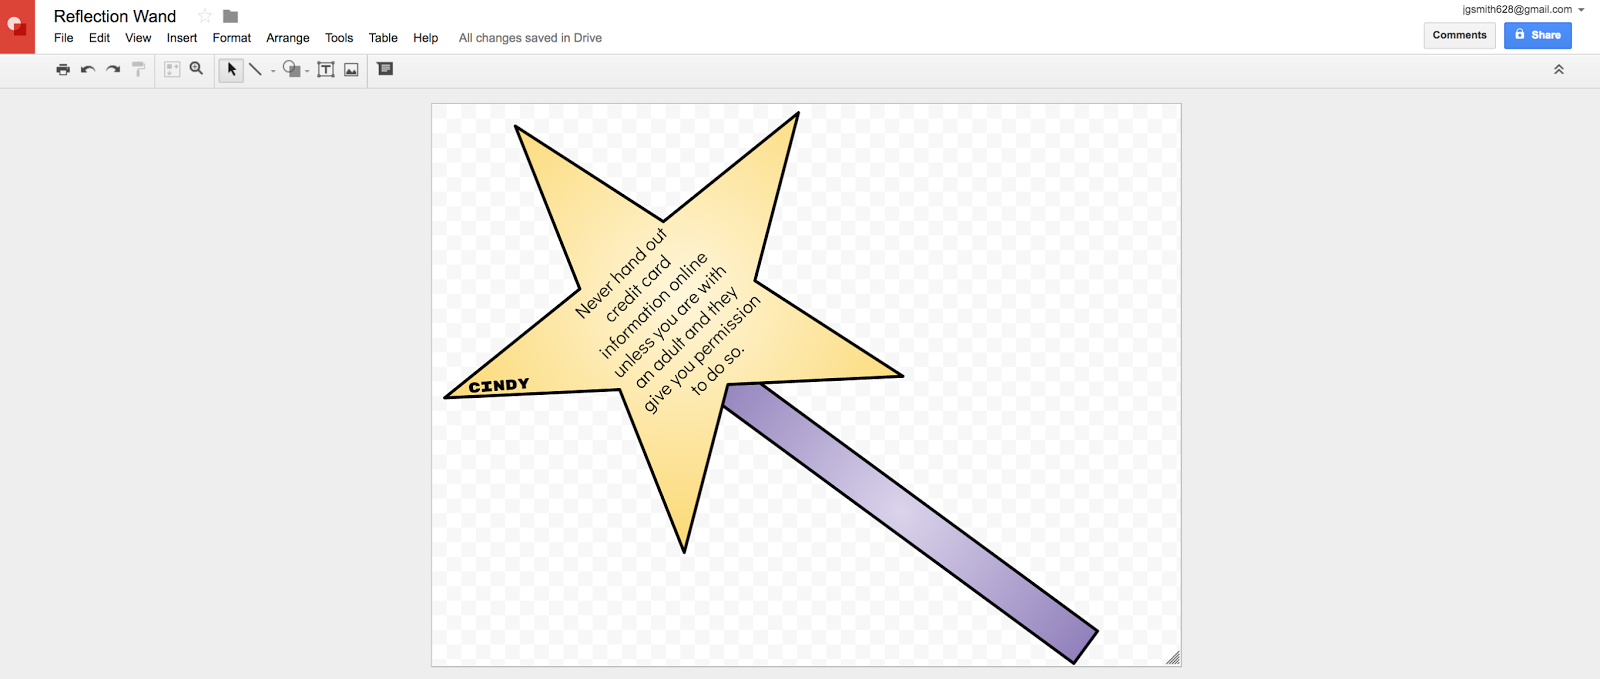 Fairy Tales: Create a Reflection Wand in a drawing or paint program like Google Drawing.